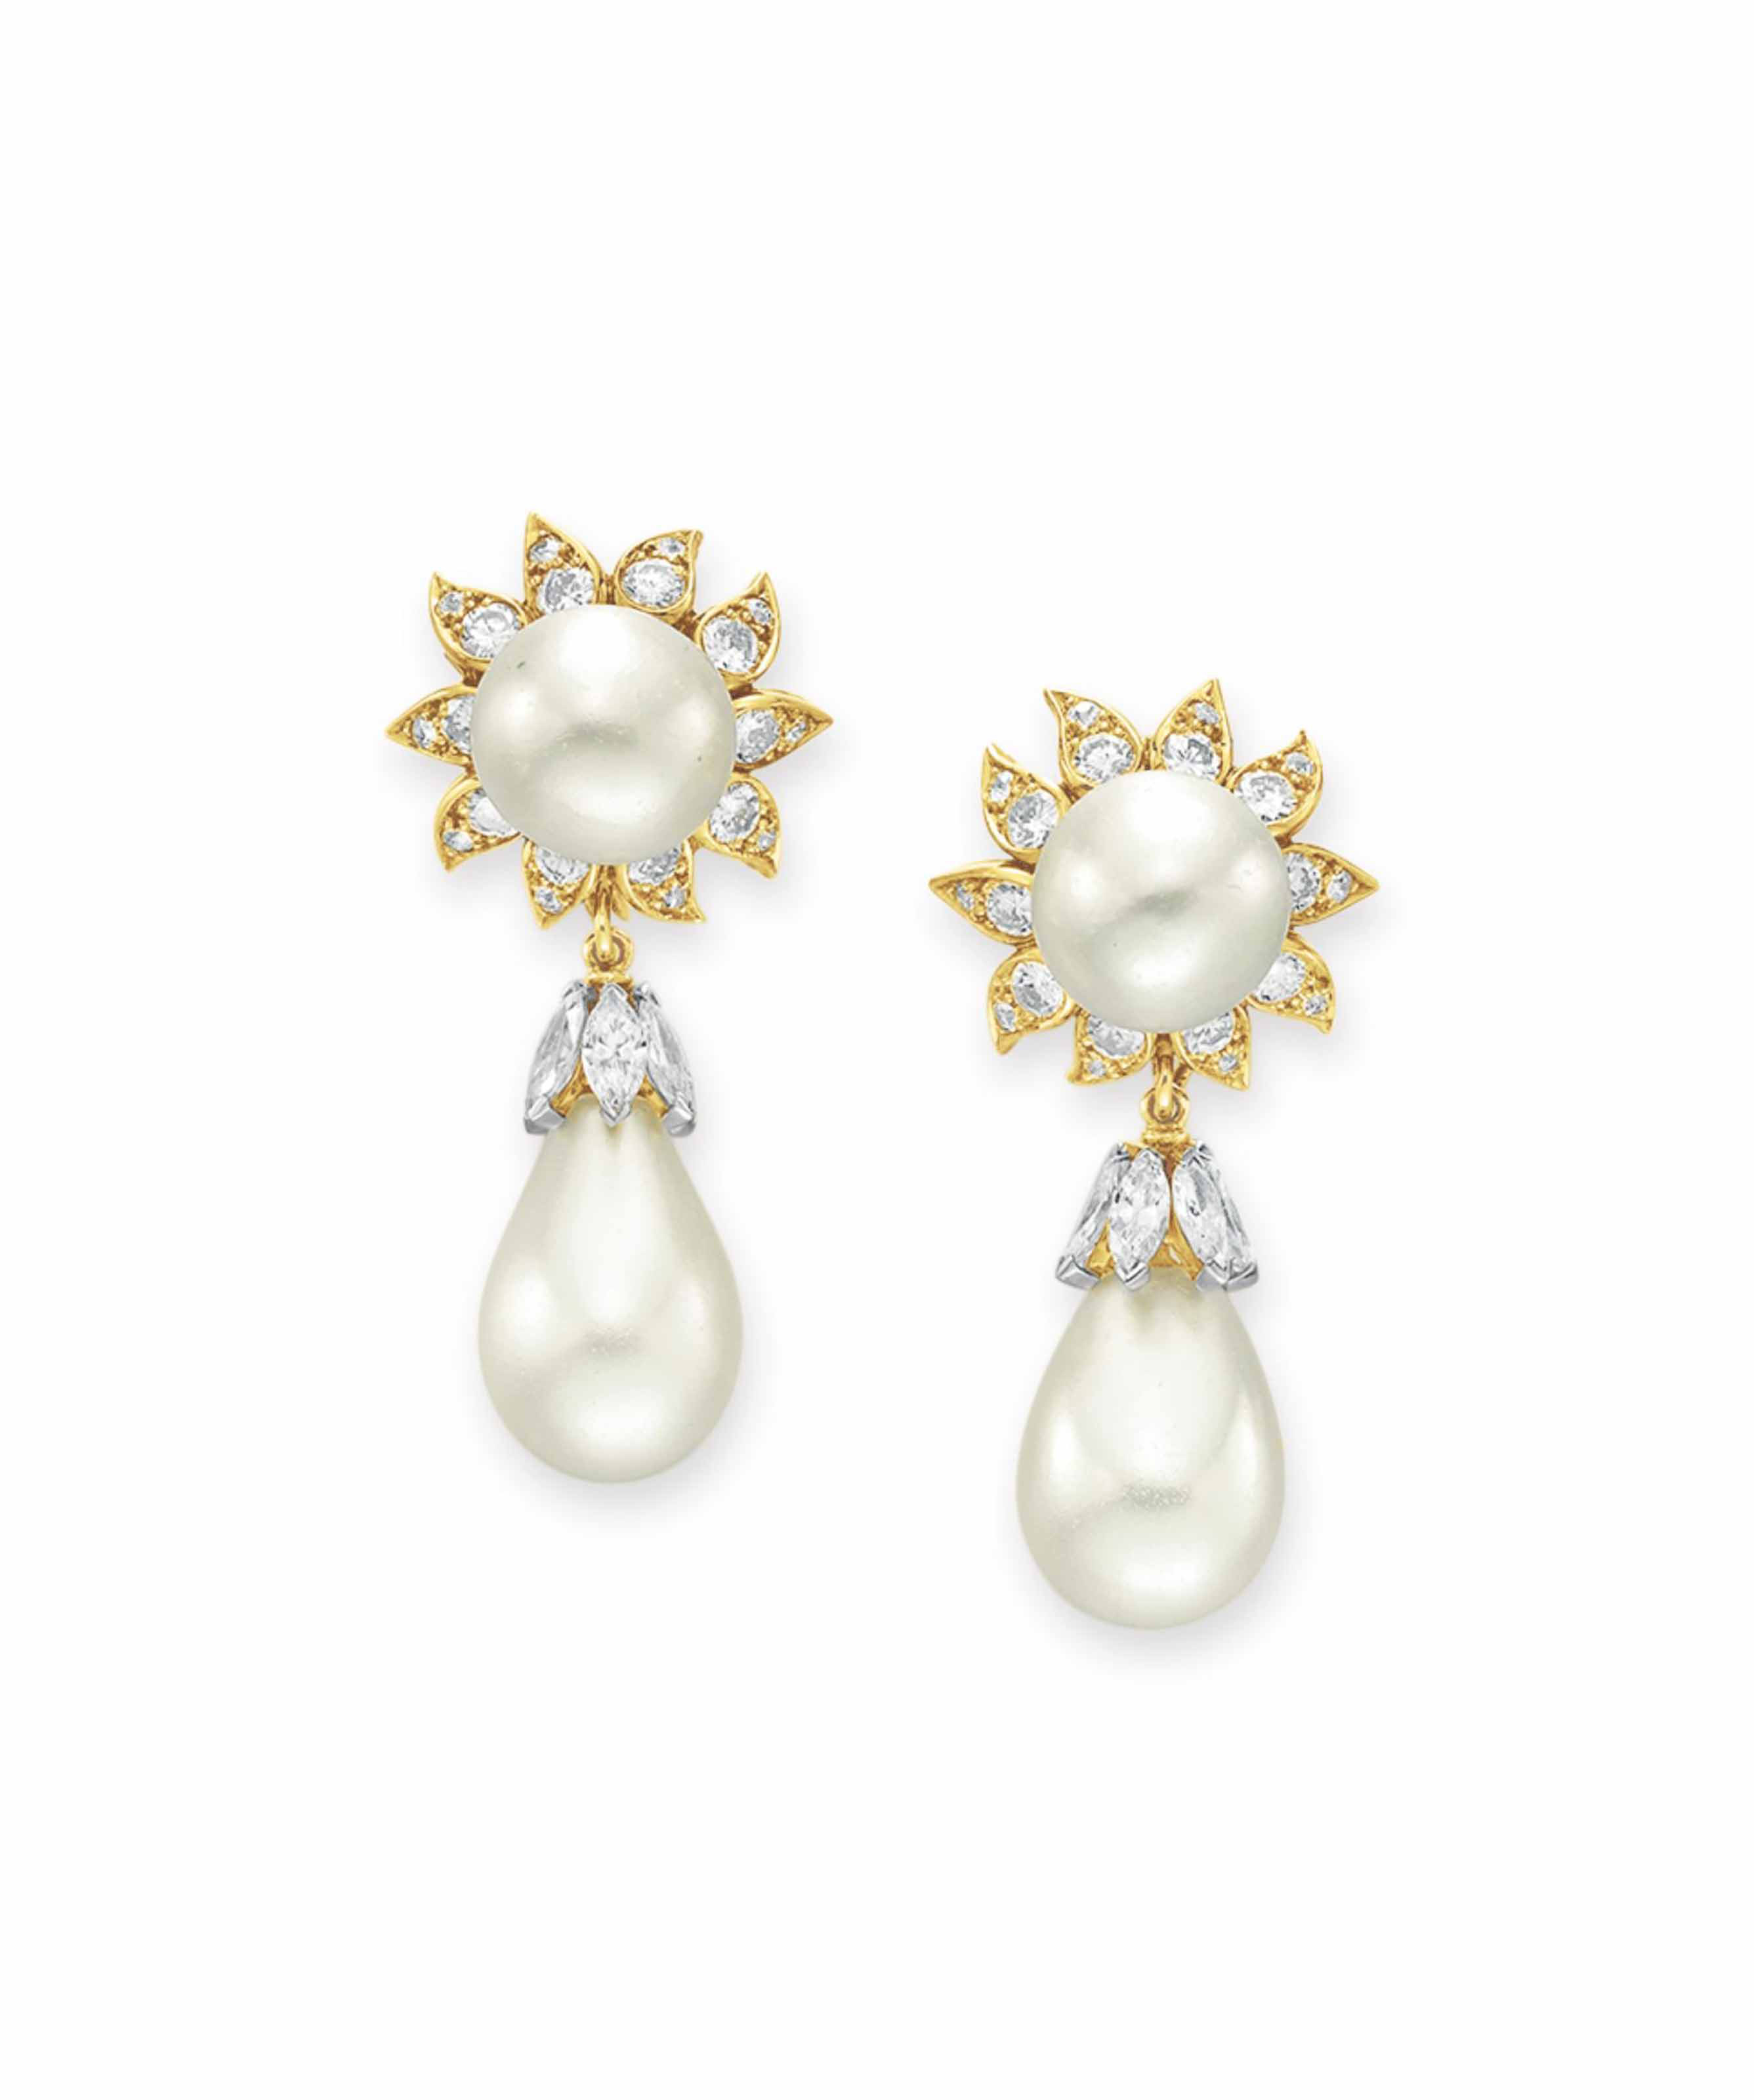 A PAIR OF NATURAL PEARL AND DIAMOND EAR PENDANTS, BY DAVID WEBB